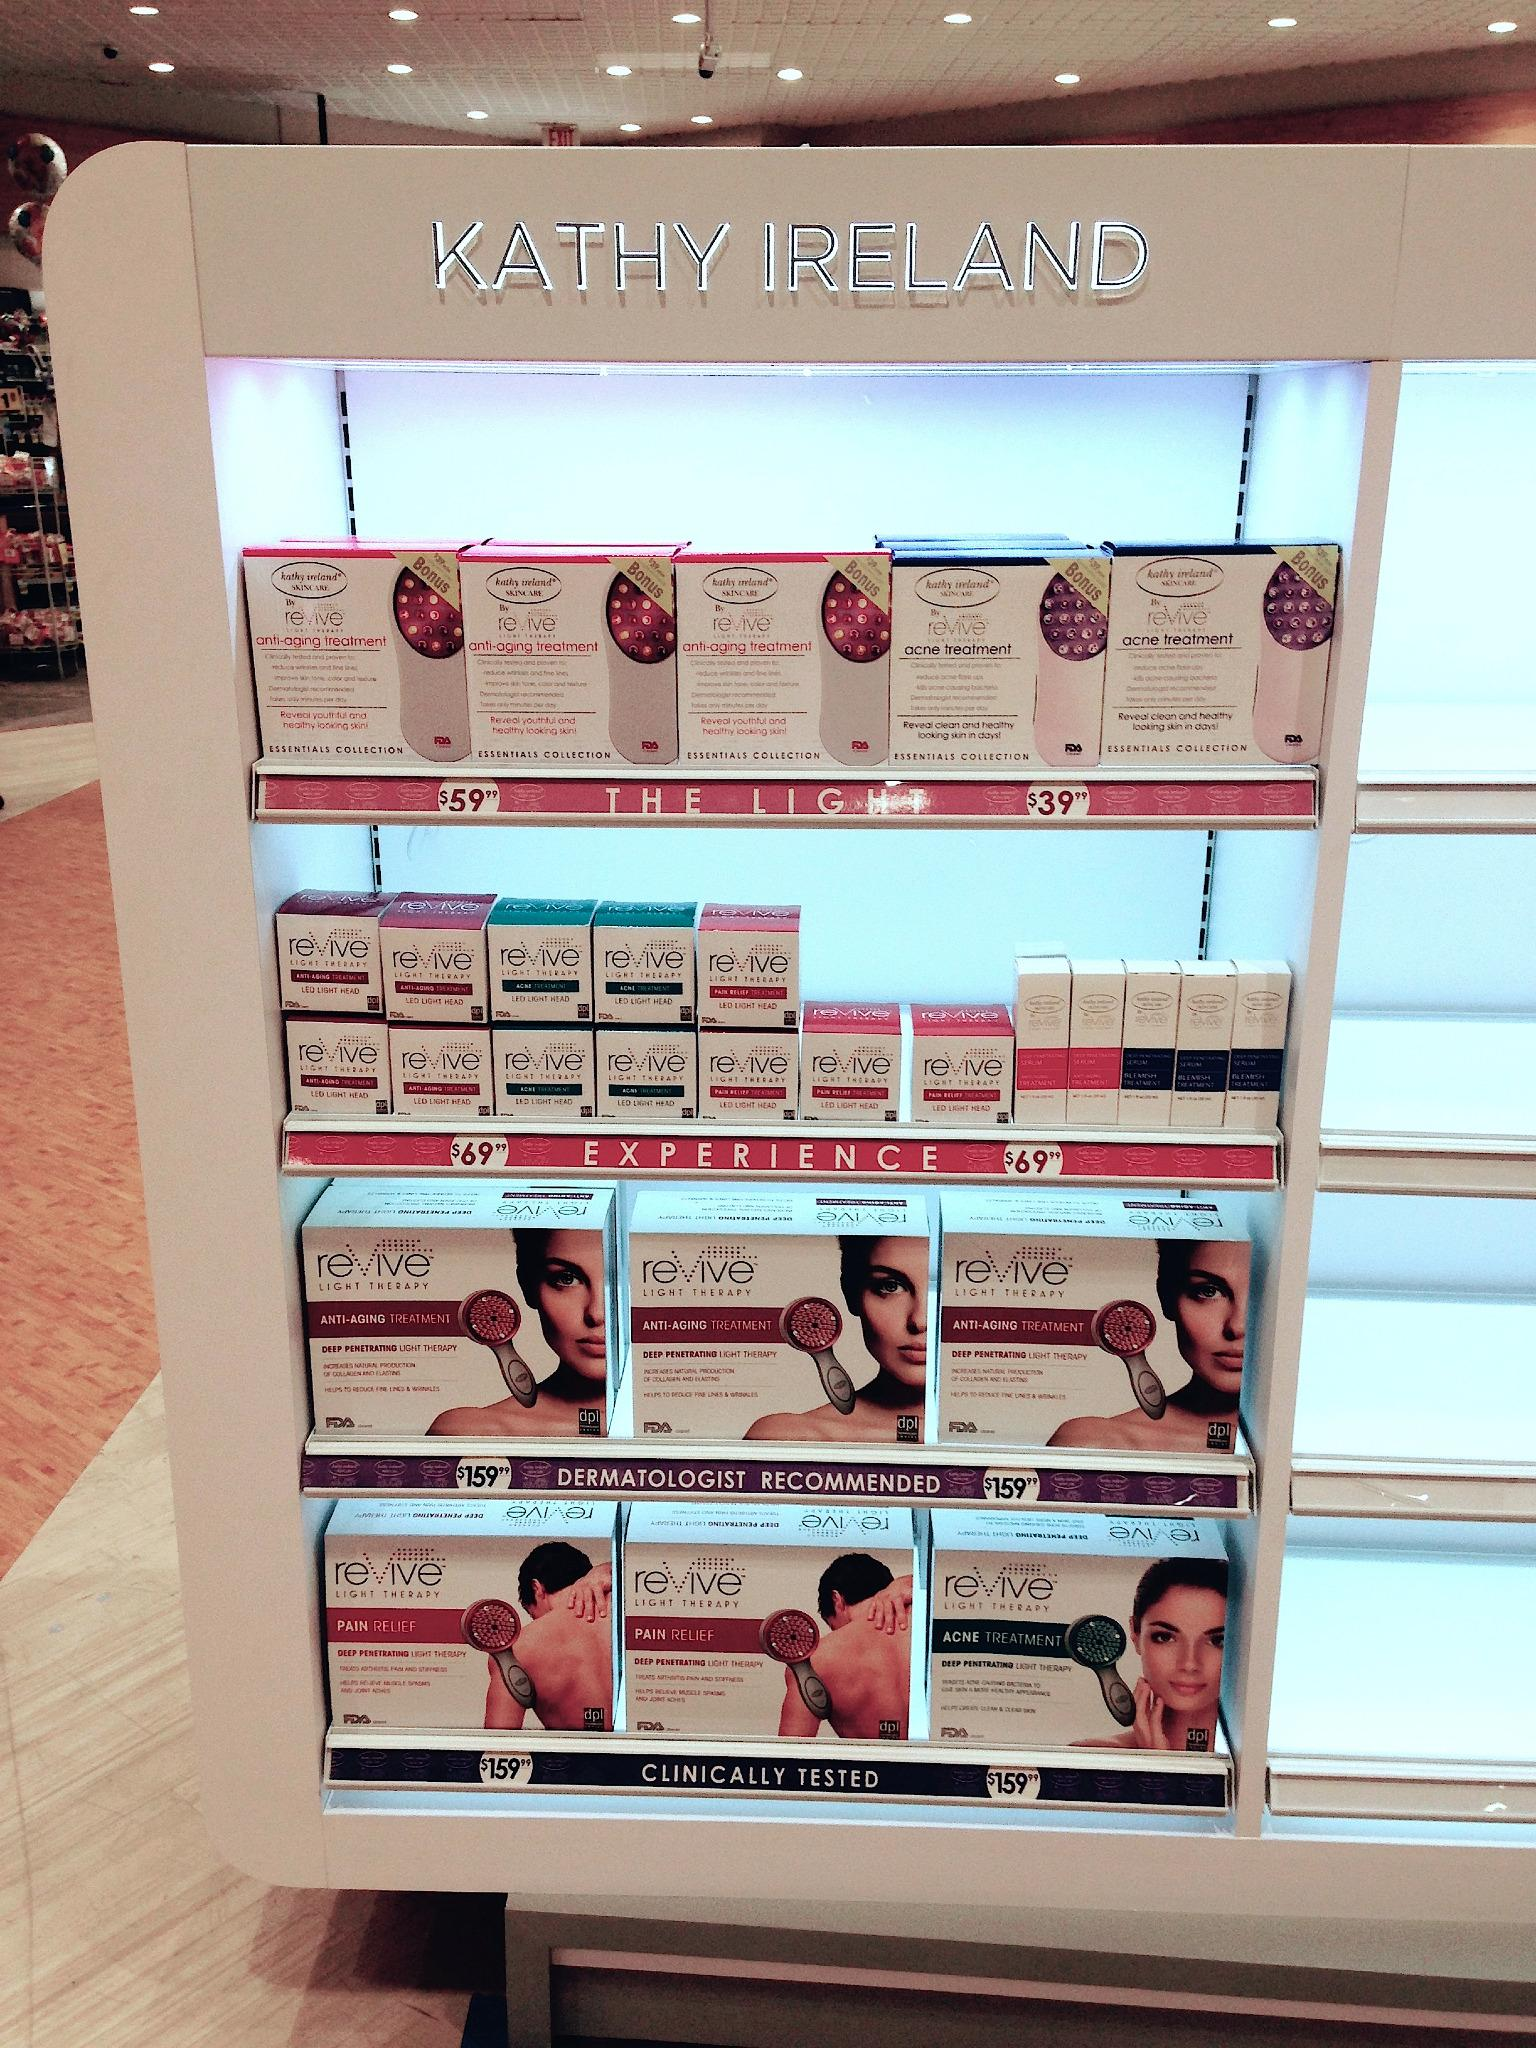 RT @Stephen90069: Happy @kathyireland by @reViveLight is available @ @riteaid. Have you used Light Therapy for acne, wrinkles or pain? http…